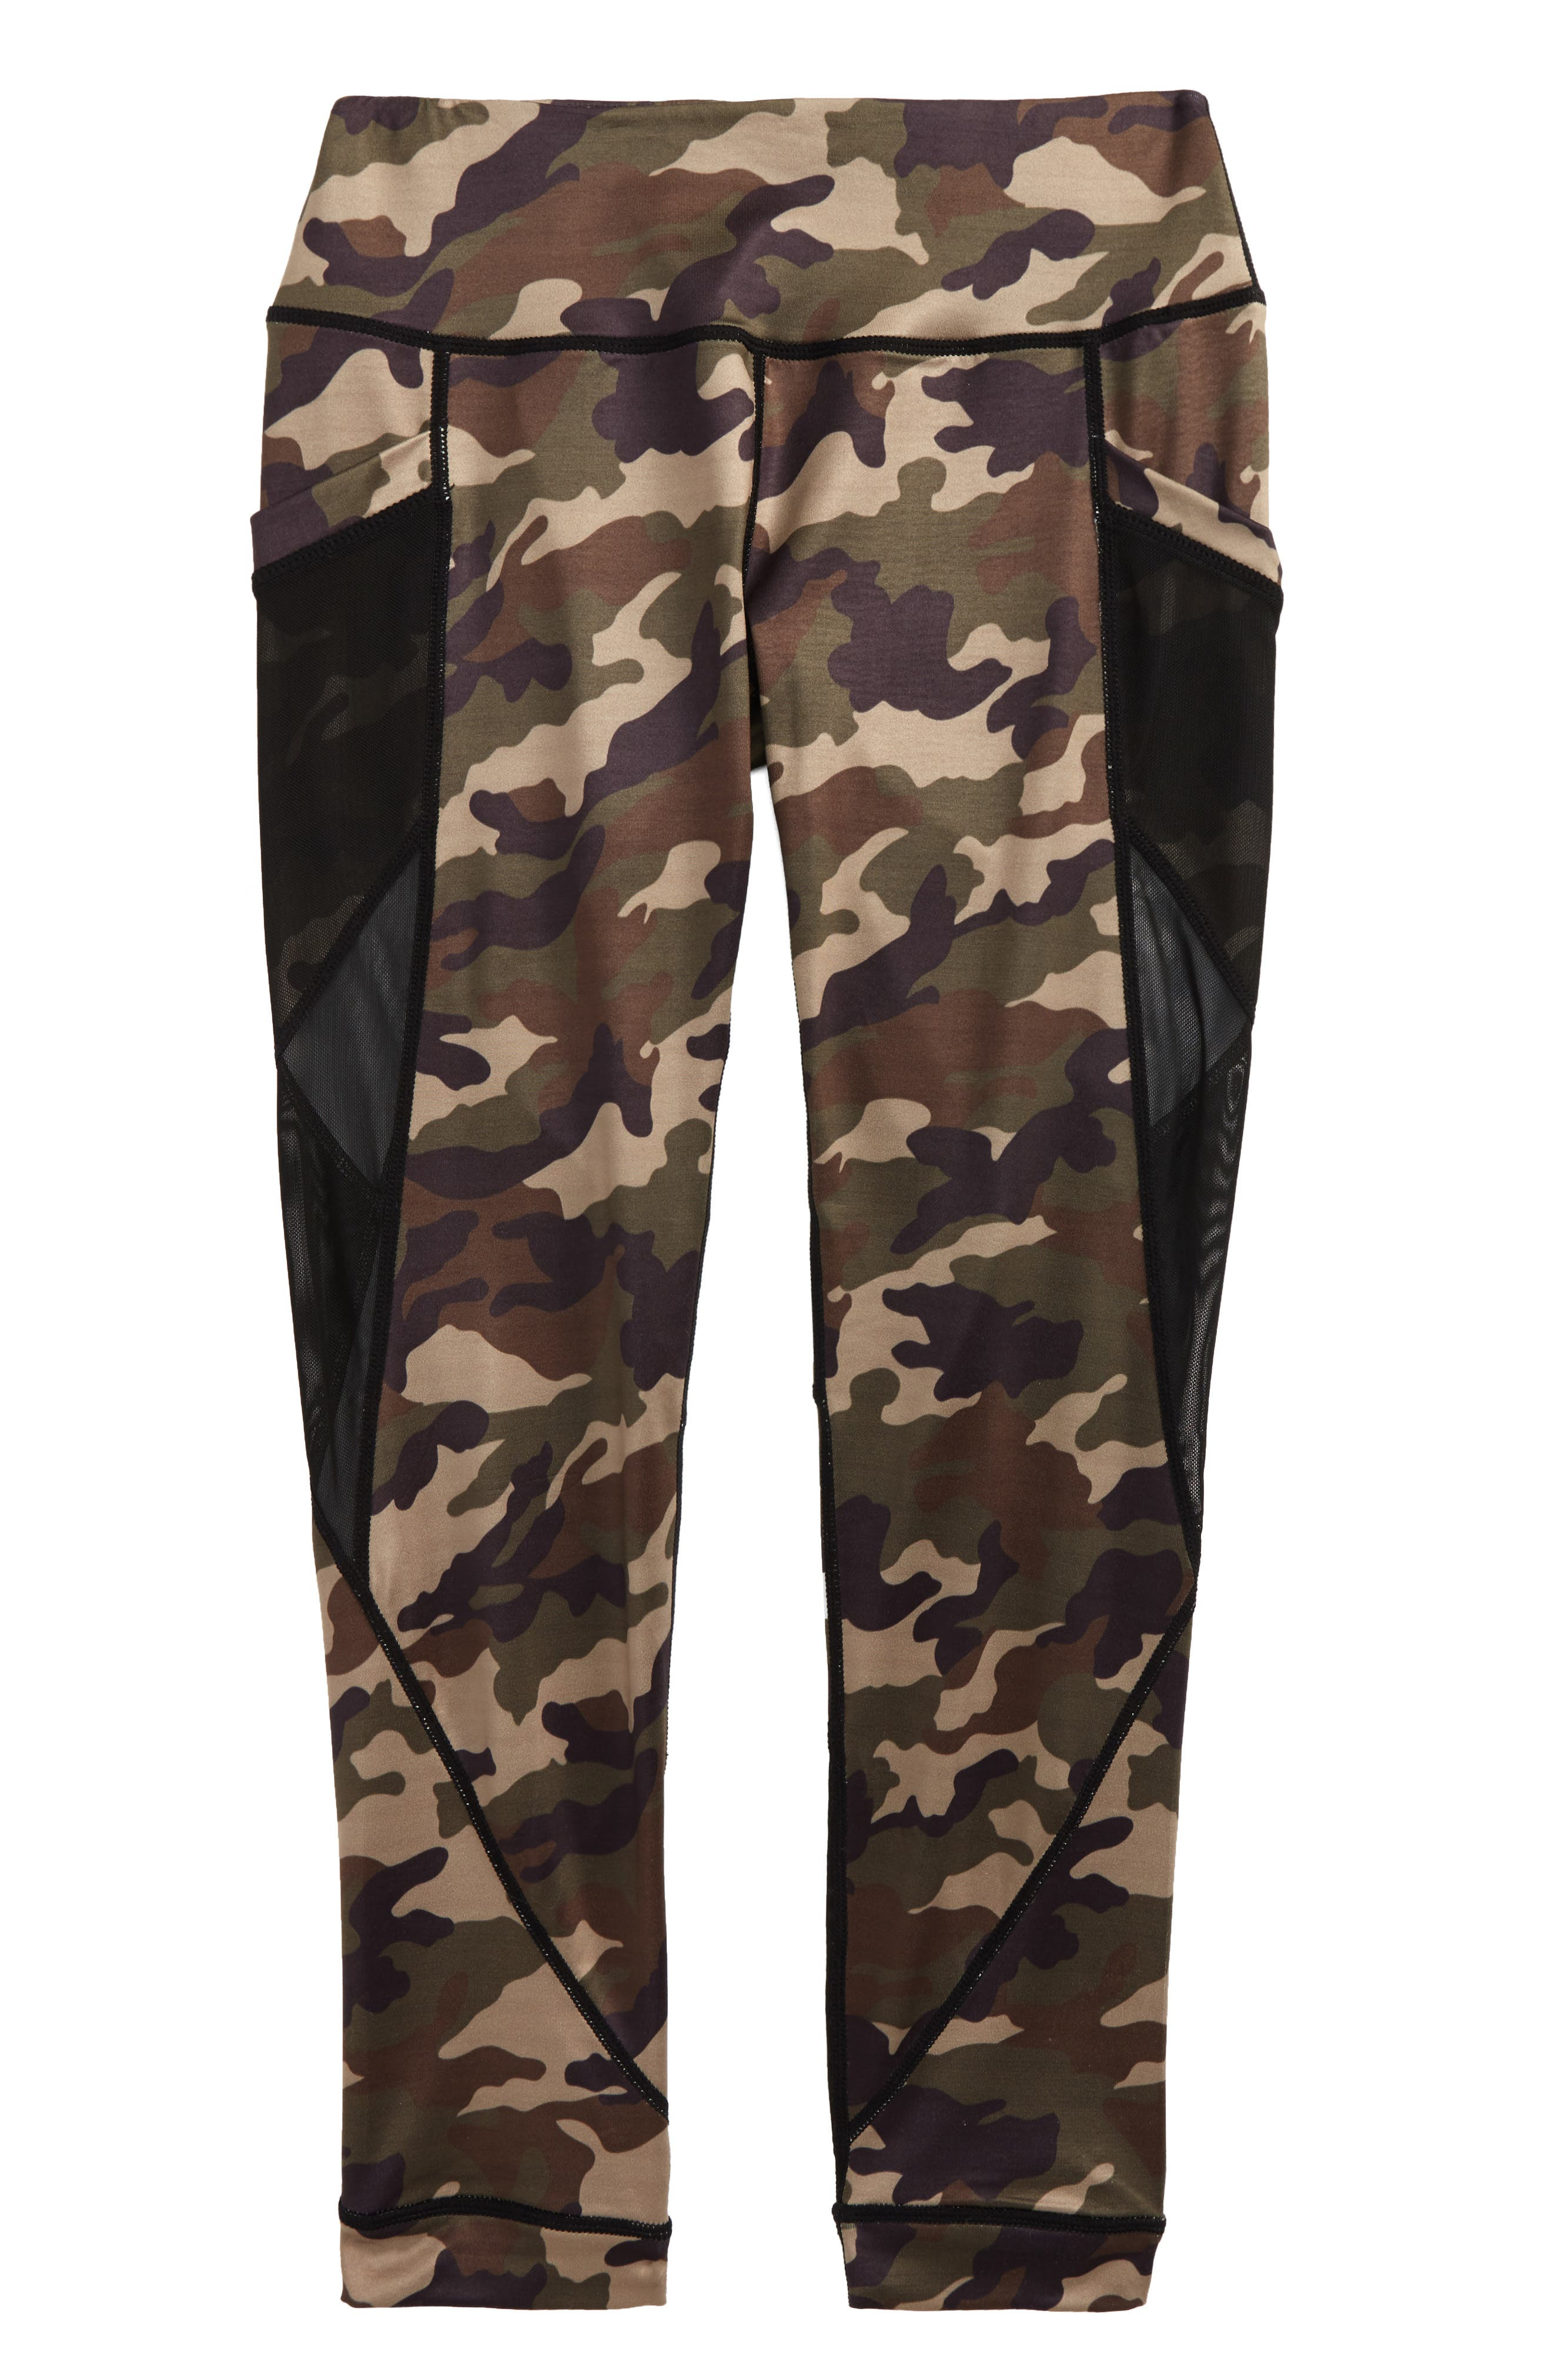 Miss Behave Laurie Camo MAX-DRI Leggings (Big Girls)